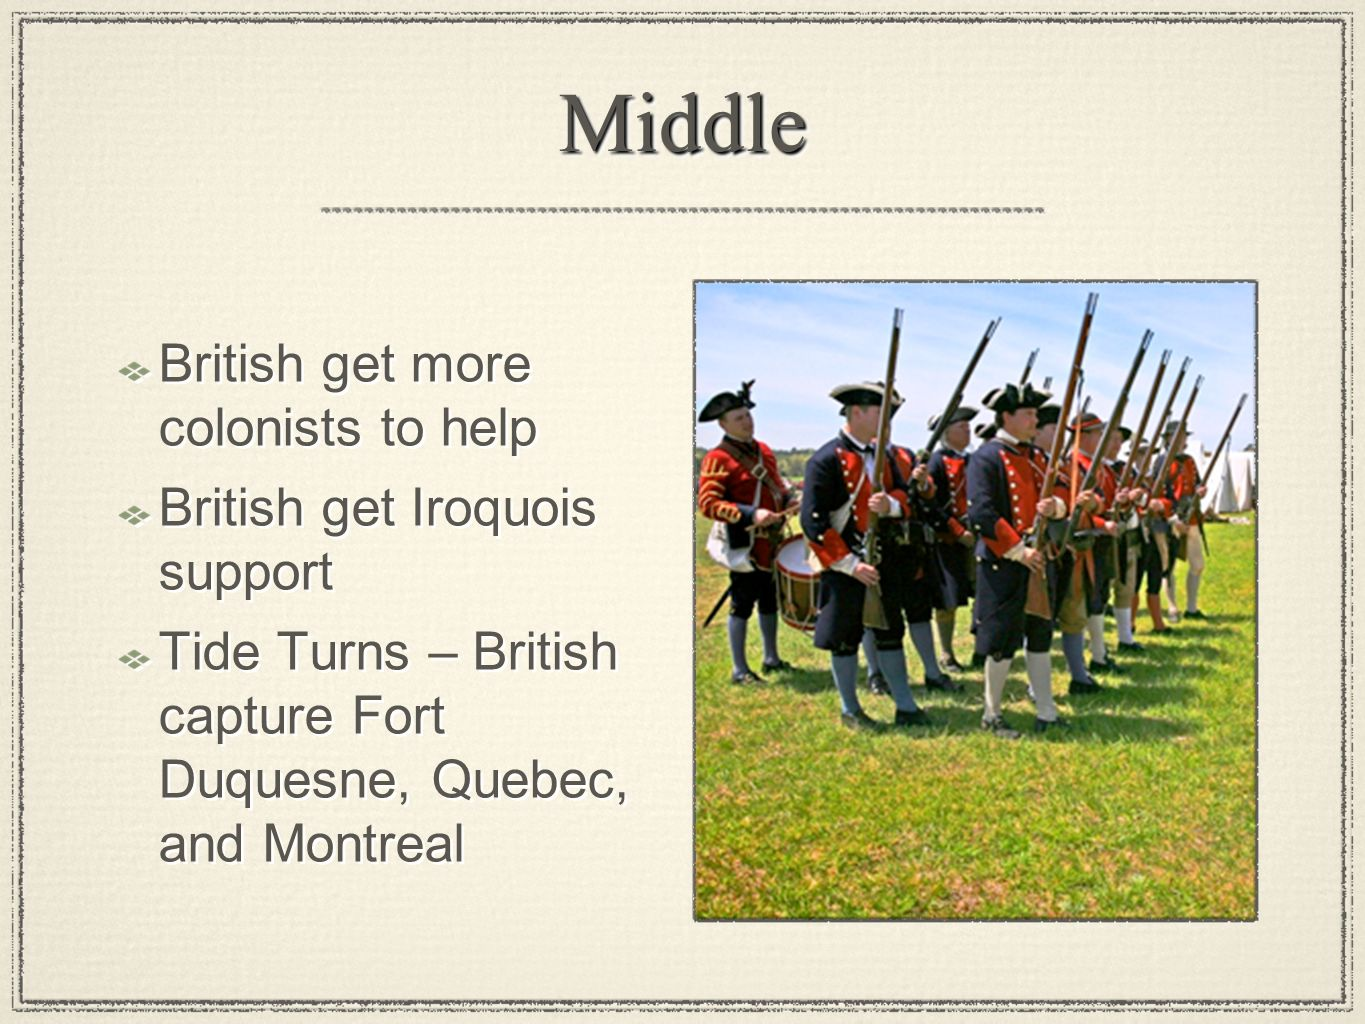 MiddleMiddle British get more colonists to help British get Iroquois support Tide Turns – British capture Fort Duquesne, Quebec, and Montreal British get more colonists to help British get Iroquois support Tide Turns – British capture Fort Duquesne, Quebec, and Montreal